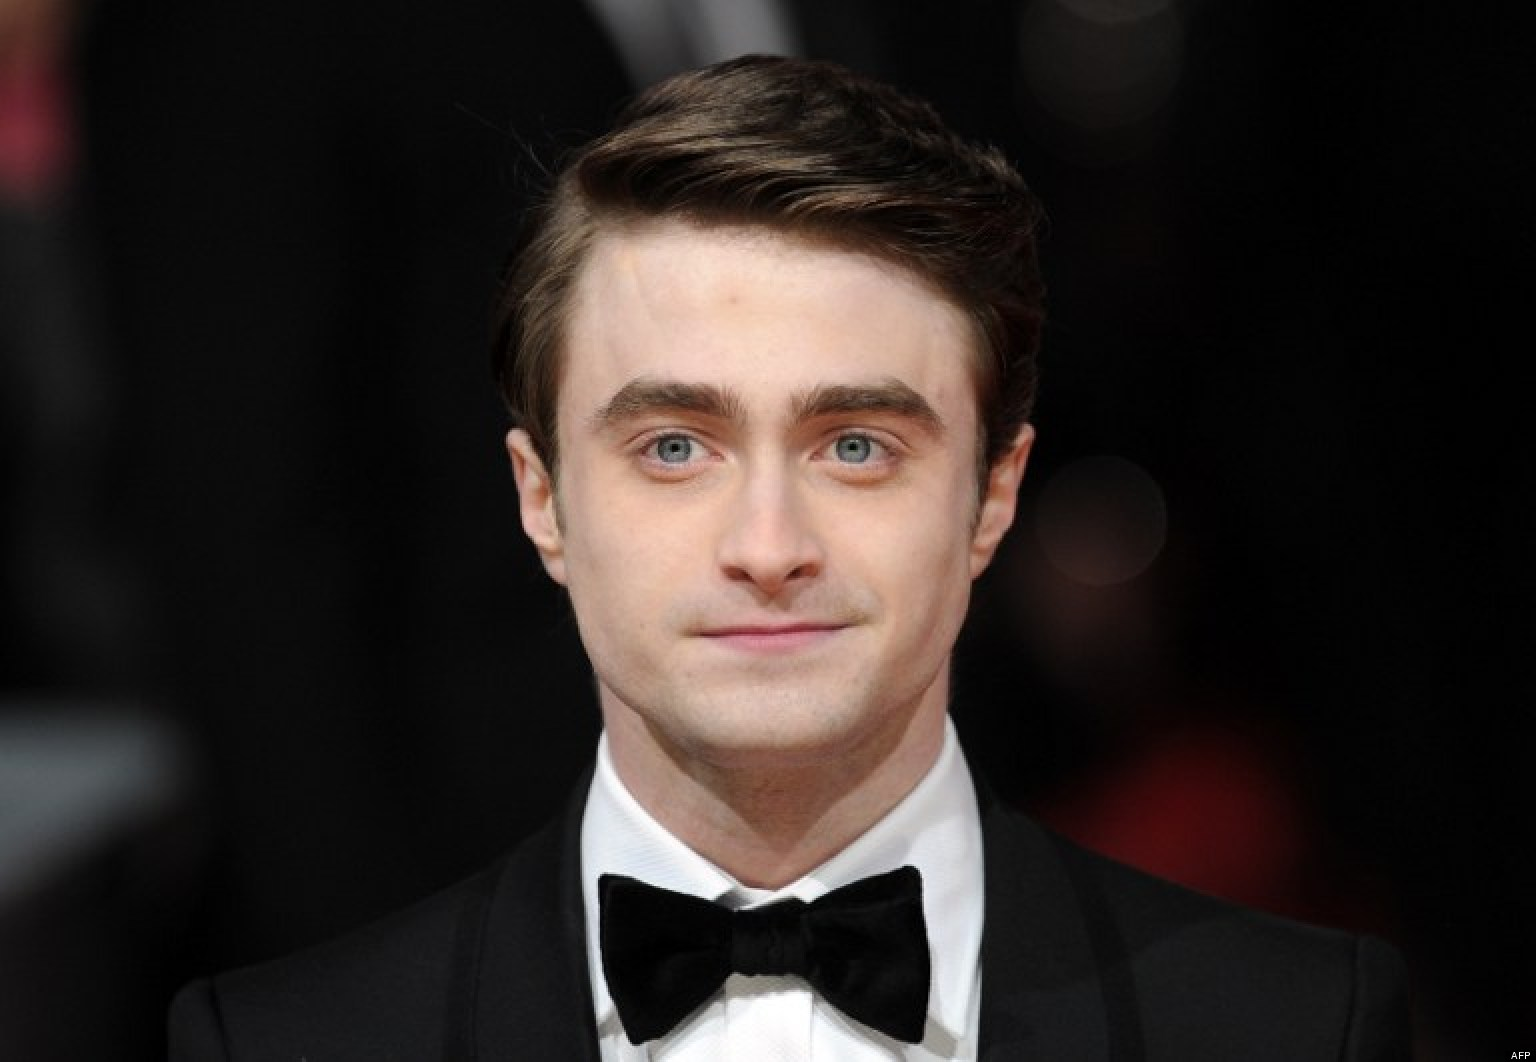 daniel radcliffe dogsdaniel radcliffe height, daniel radcliffe girlfriend, daniel radcliffe films, daniel radcliffe 2017, daniel radcliffe twitter, daniel radcliffe wikipedia, daniel radcliffe movies, daniel radcliffe биография, daniel radcliffe vk, daniel radcliffe facebook, daniel radcliffe emma watson, daniel radcliffe рост, daniel radcliffe interview, daniel radcliffe фильмы, daniel radcliffe filmleri, daniel radcliffe imdb, daniel radcliffe dogs, daniel radcliffe tumblr, daniel radcliffe filmi, daniel radcliffe married